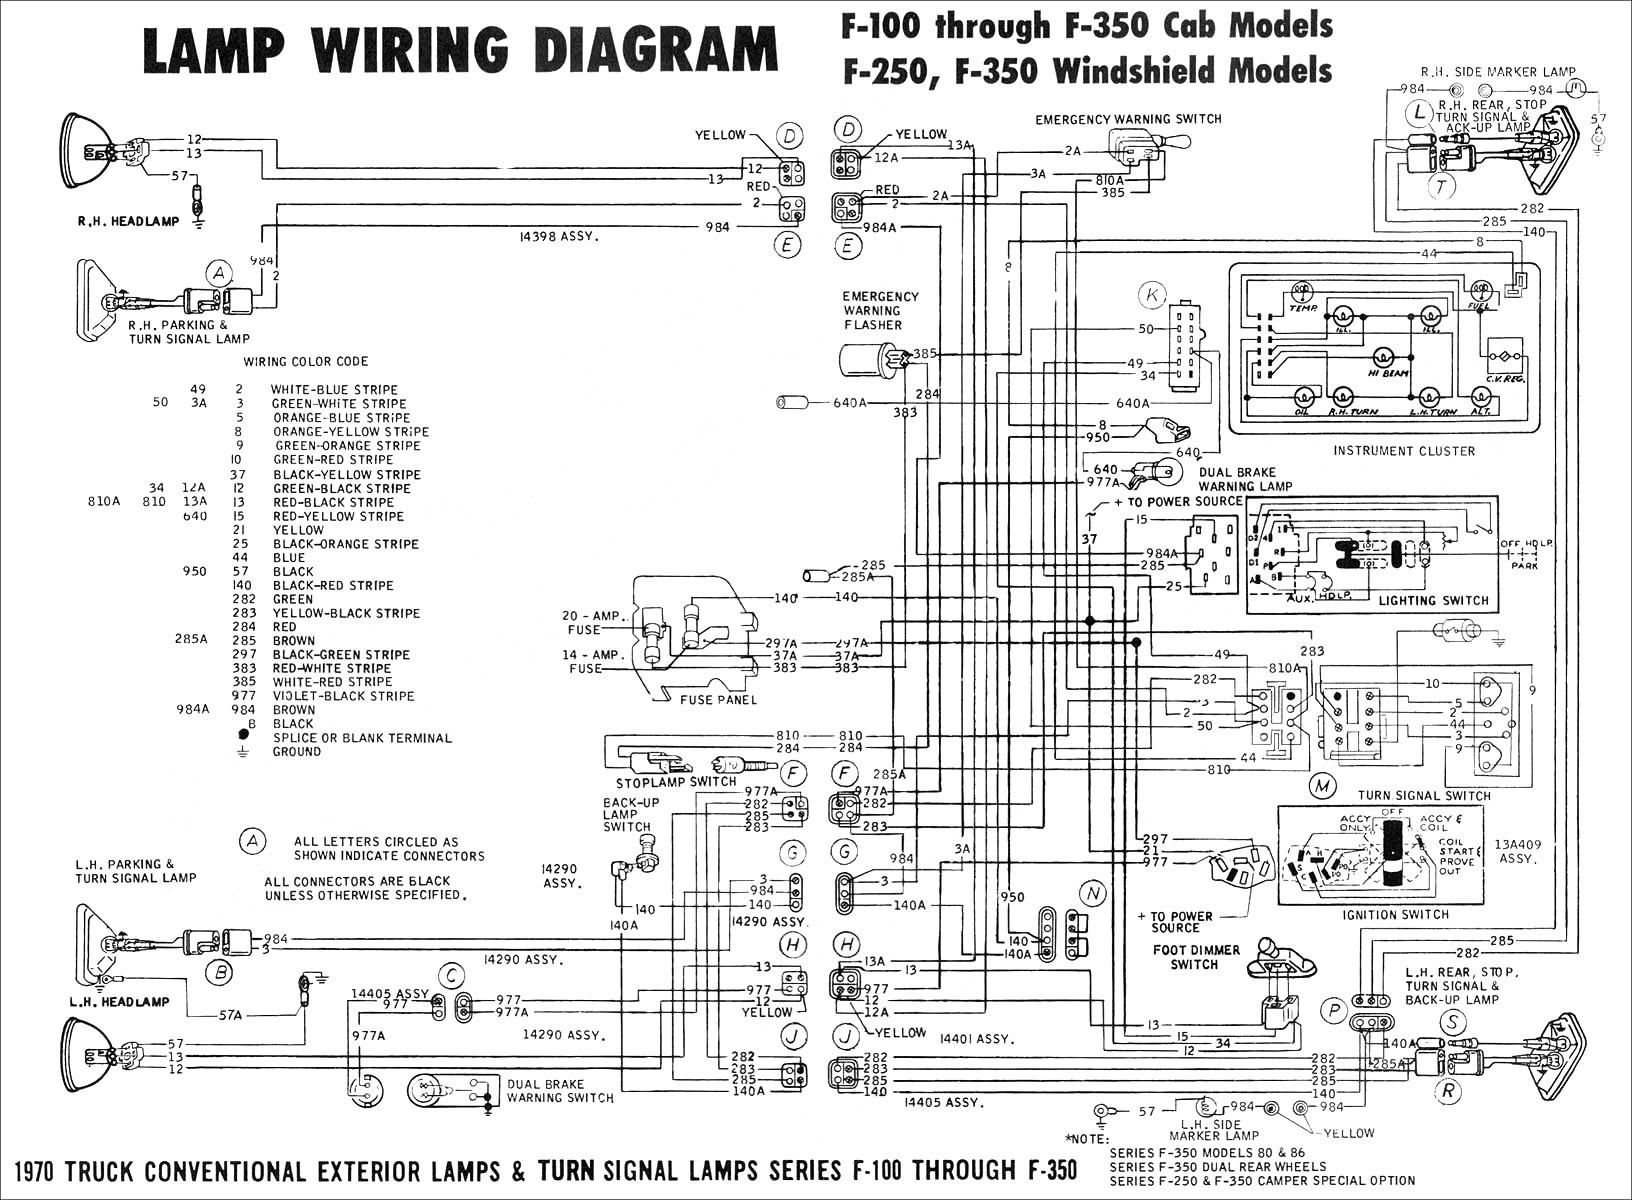 2001 toyota Tacoma Engine Diagram Wiring Diagram for Wiring Diagram for toyota Ta A 2001 Contents Of 2001 toyota Tacoma Engine Diagram